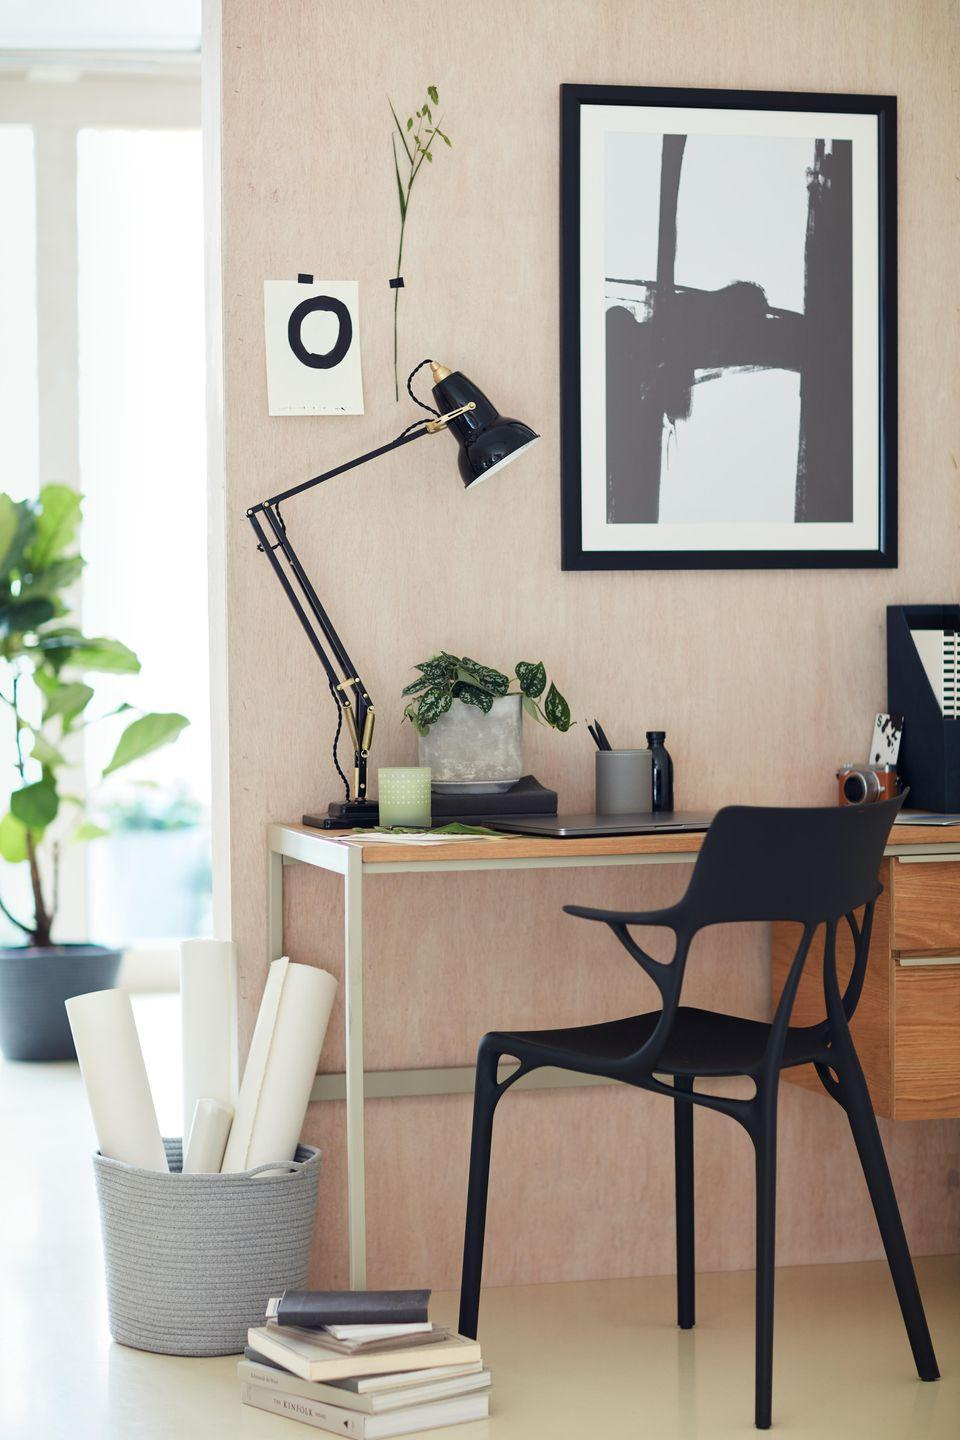 """<p>Over the past year, our homes have become multifunctional places for both work and play. Taking this into account, John Lewis has everything you need to work from home efficiently. You'll find space-saving desks, comfortable chairs, lights and study essentials. </p><p>'This season we've brought function and beauty together<br>to offer our customers a selection of design-led desks<br>that will elevate any home office space,' says David Barrett, Partner & Living and Dining Furniture Buyer.<br></p><p><a class=""""link rapid-noclick-resp"""" href=""""https://go.redirectingat.com?id=127X1599956&url=https%3A%2F%2Fwww.johnlewis.com%2Fbrowse%2Fhome-garden%2Fnew-in-home%2F_%2FN-7opk&sref=https%3A%2F%2Fwww.housebeautiful.com%2Fuk%2Flifestyle%2Fshopping%2Fg35369005%2Fjohn-lewis-partners-homeware-spring-summer%2F"""" rel=""""nofollow noopener"""" target=""""_blank"""" data-ylk=""""slk:SHOP NOW"""">SHOP NOW</a></p>"""